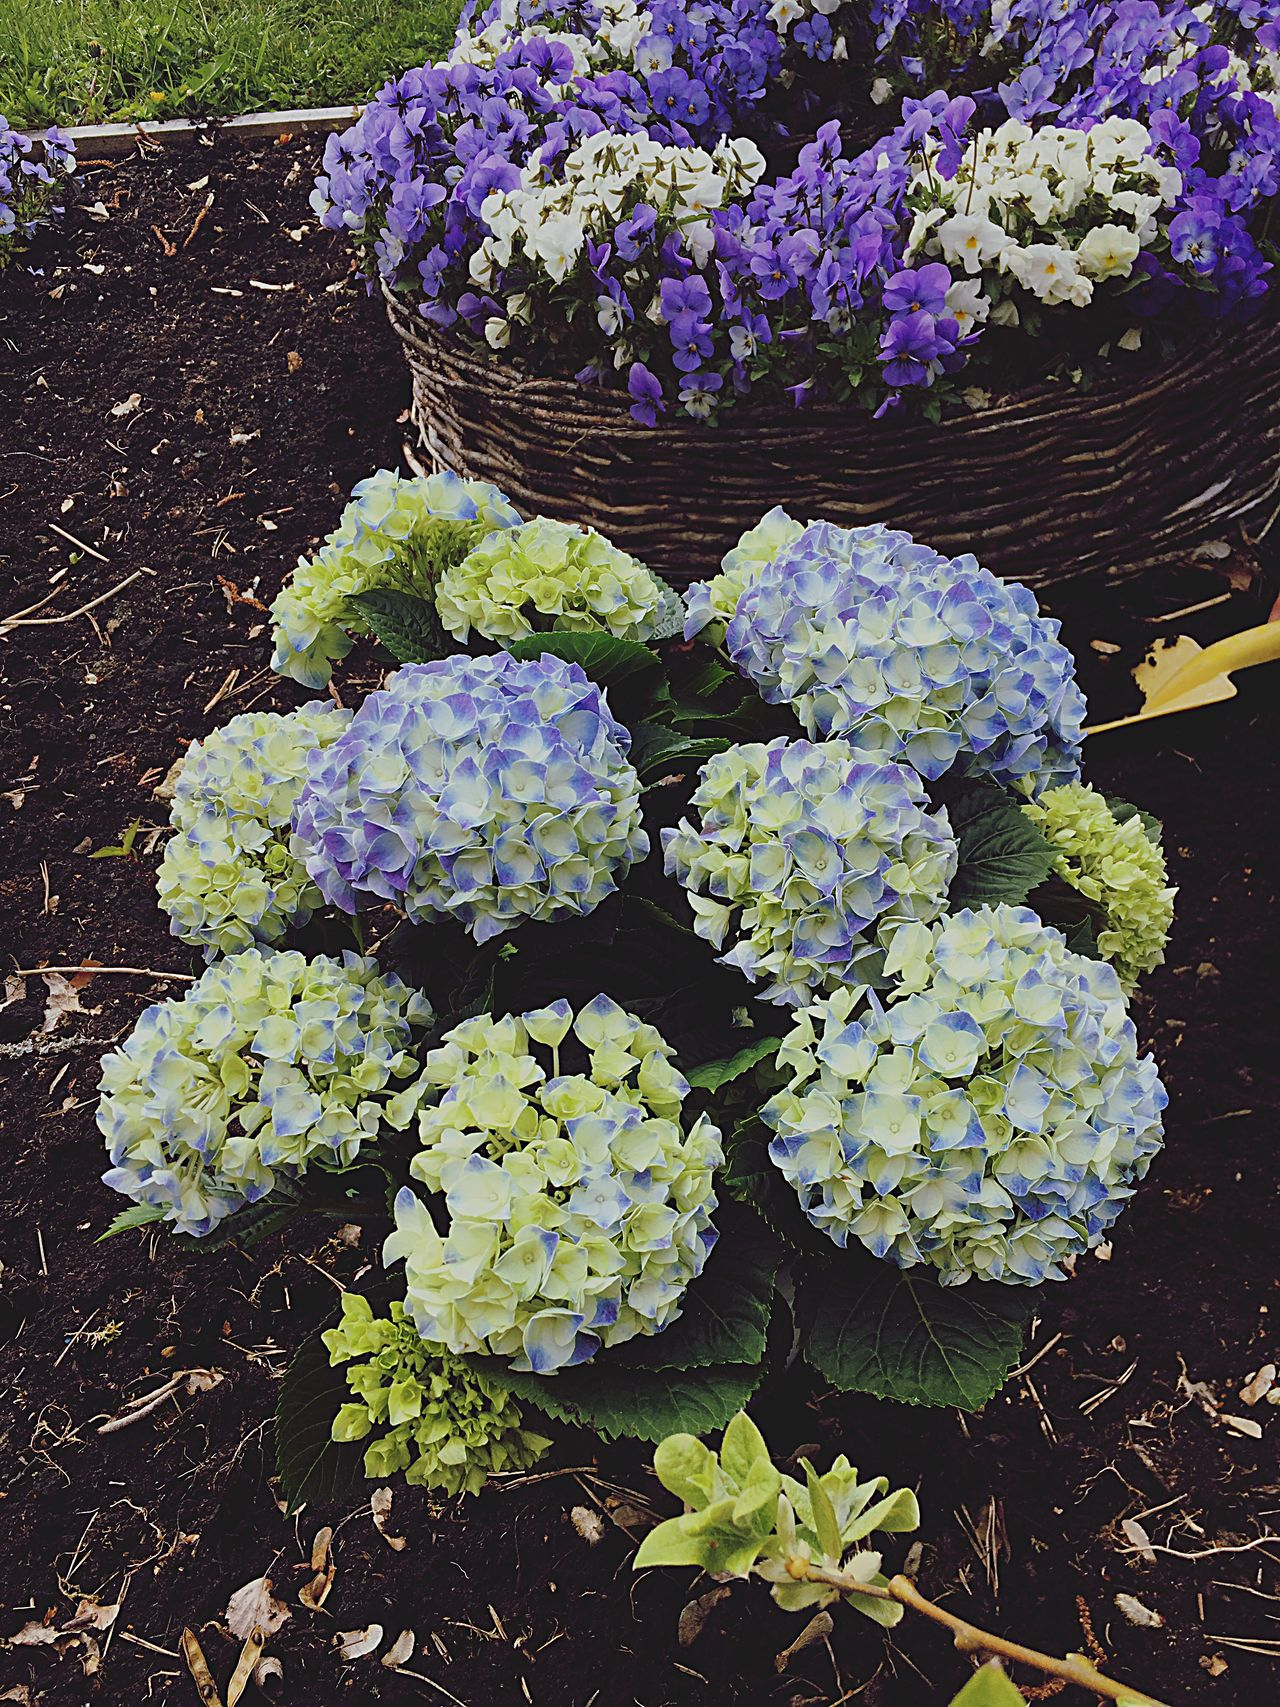 Growth Flower Freshness Nature Plant Purple Beauty In Nature Outdoors Fragility Day High Angle View No People Leaf Hydrangea Close-up Springtime Lilac Flower Head üüüüü